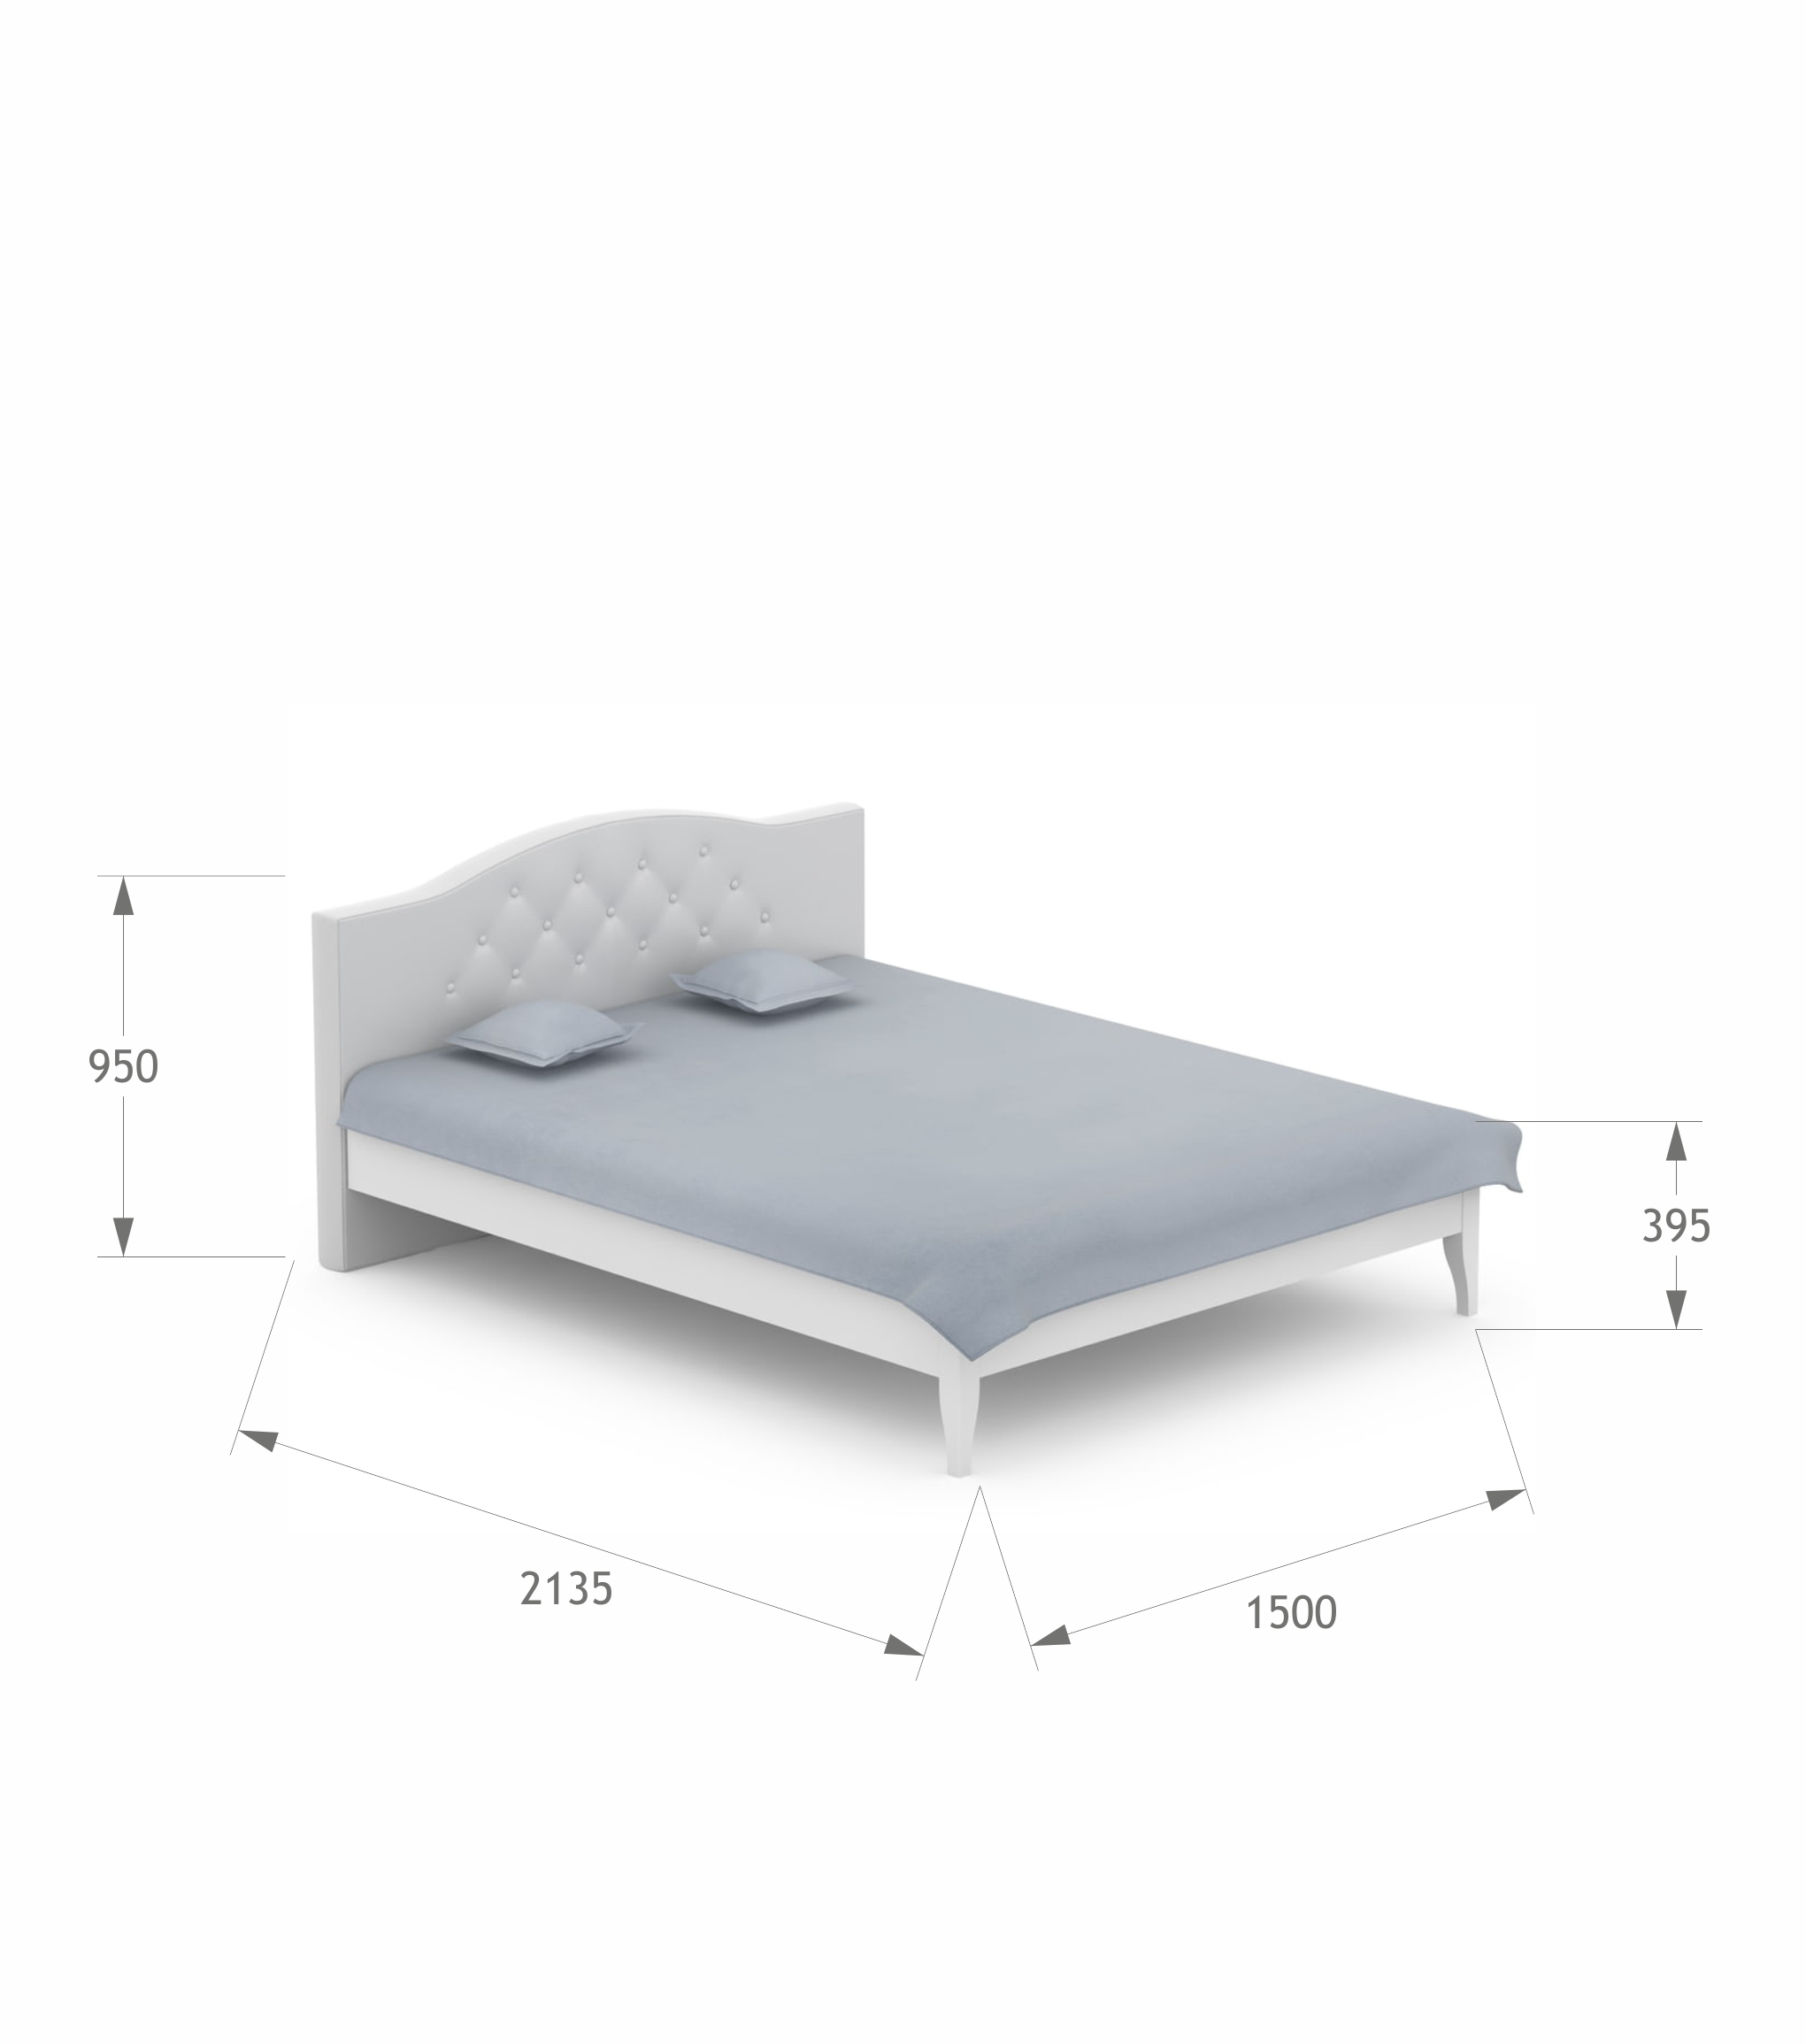 Full Size of Bett 140 200 Simple Grey Meblik Konfigurieren 200x200 Mit Bettkasten 140x220 Antik 160x200 Komplett Luxus Betten Chesterfield Komforthöhe Massivholz 180x200 Bett Bett 1 40